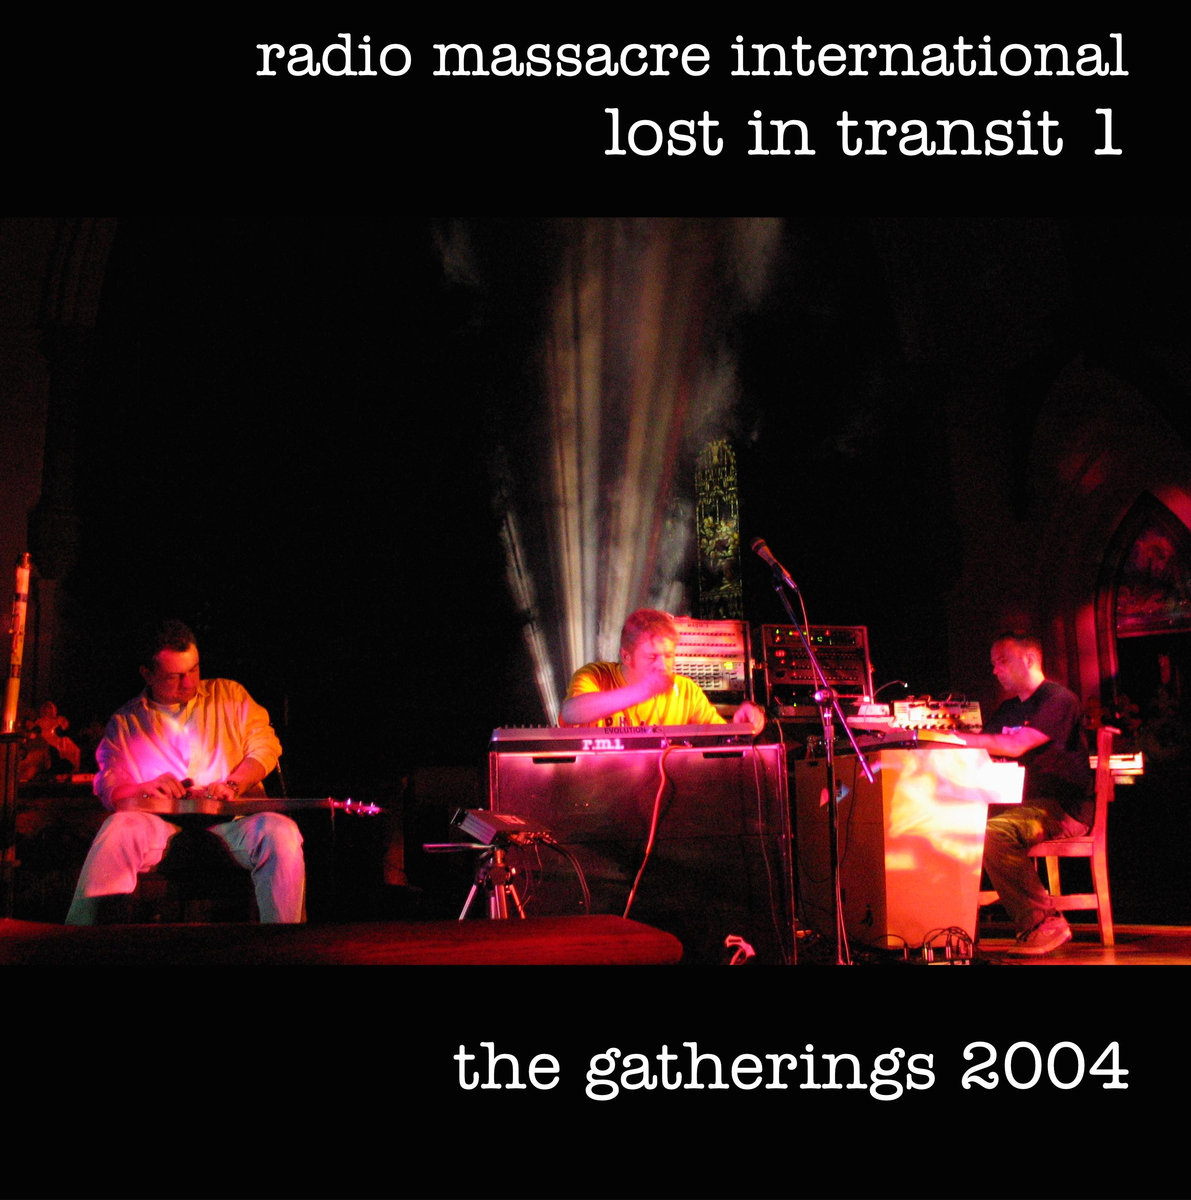 lost in transit 1: the gatherings 2004